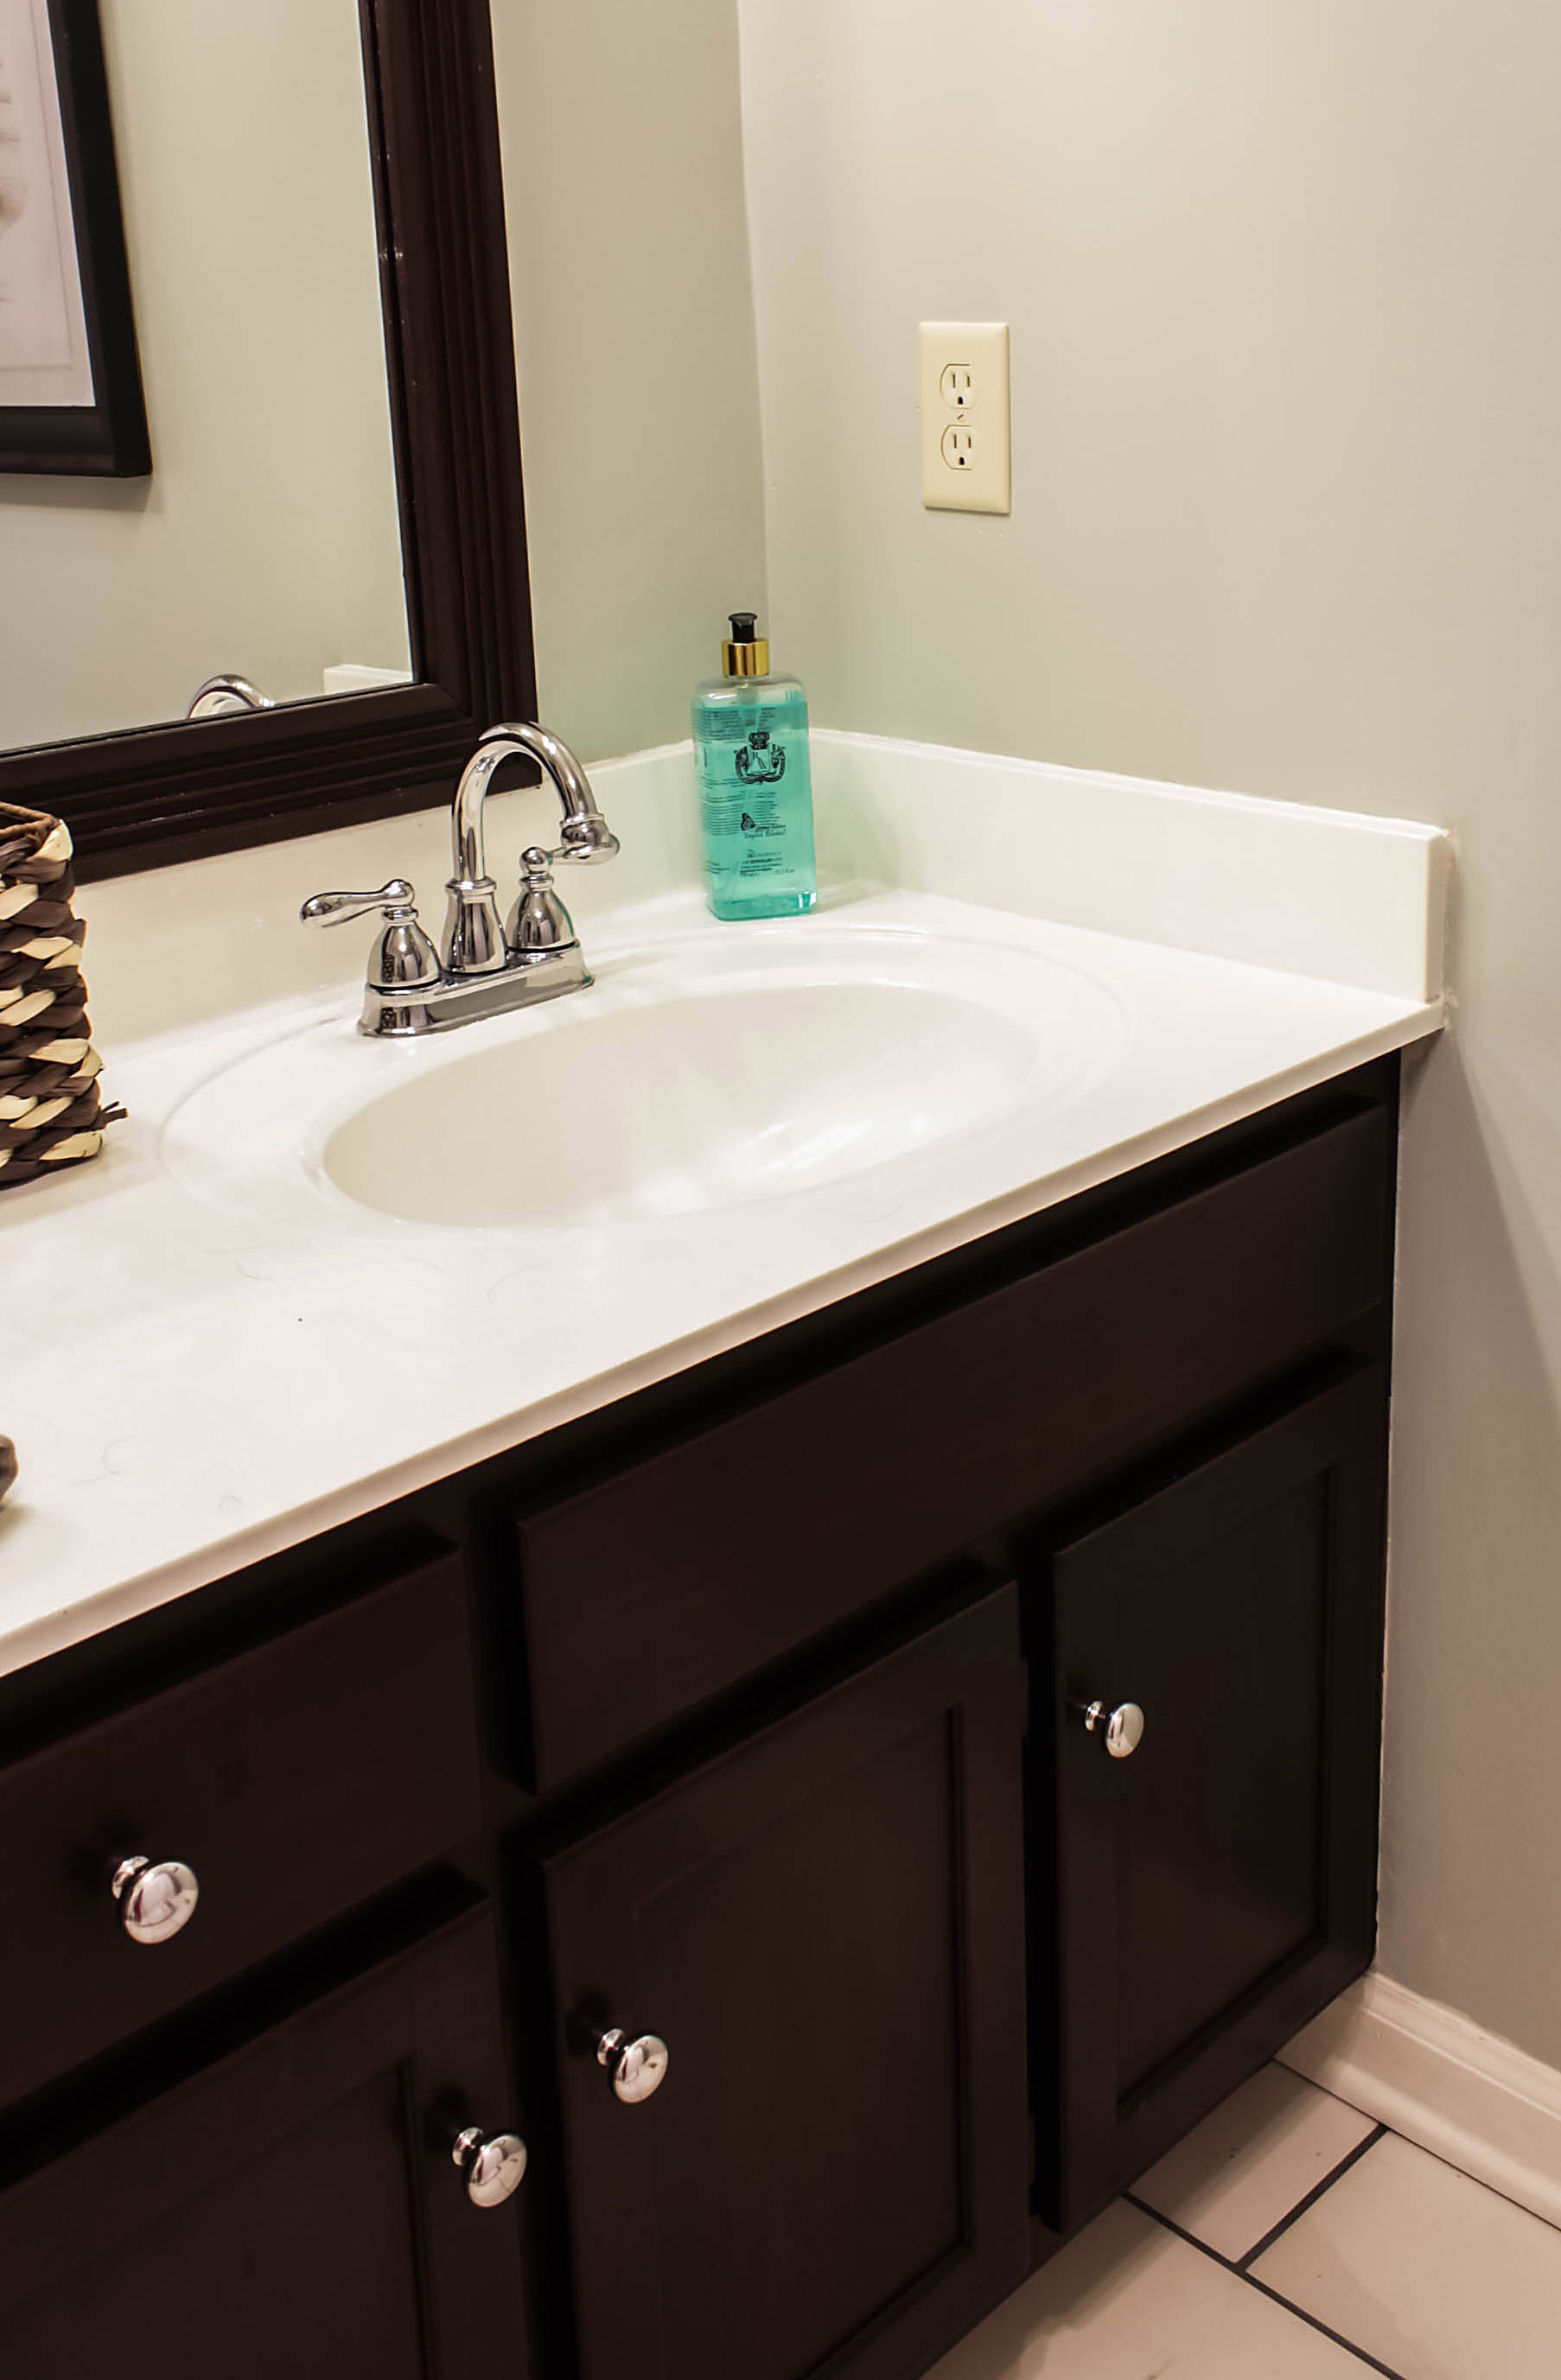 how to paint cultured marble countertops diy tutorial rh designingvibes com Bathroom with One Piece Sink Countertops Veined Cultured Marble Vanity Tops